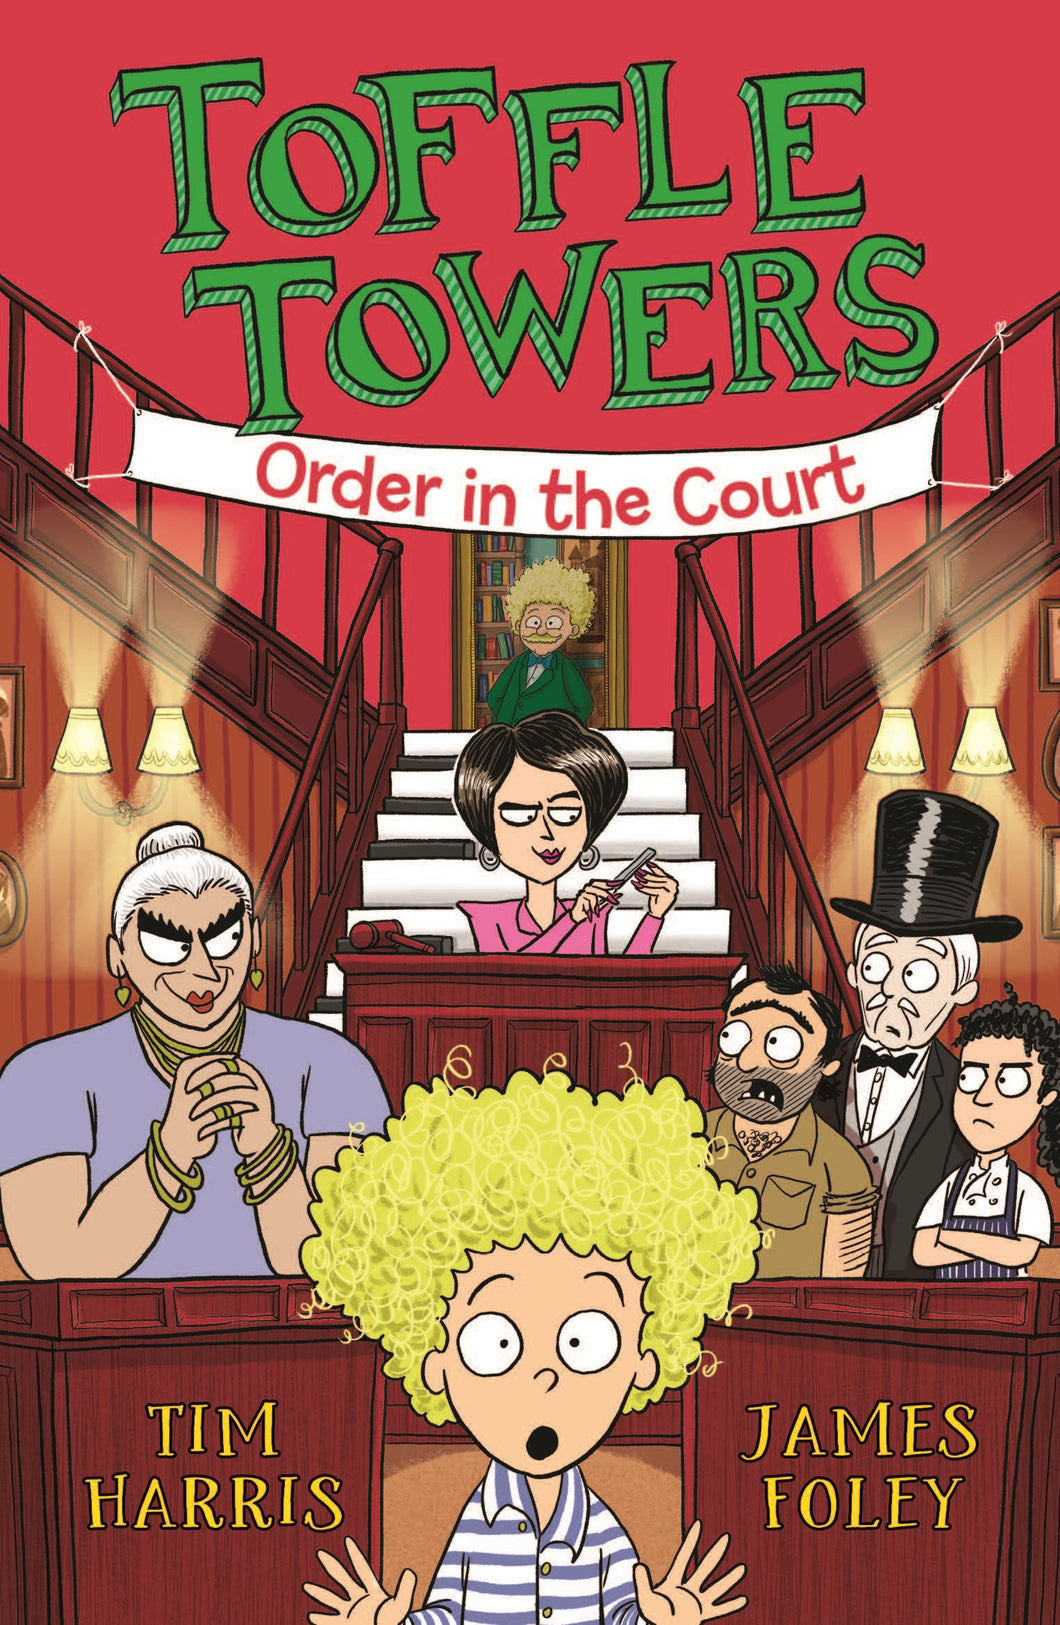 Toffle Towers 3: Order in the Court by Tim Harris and James Foley